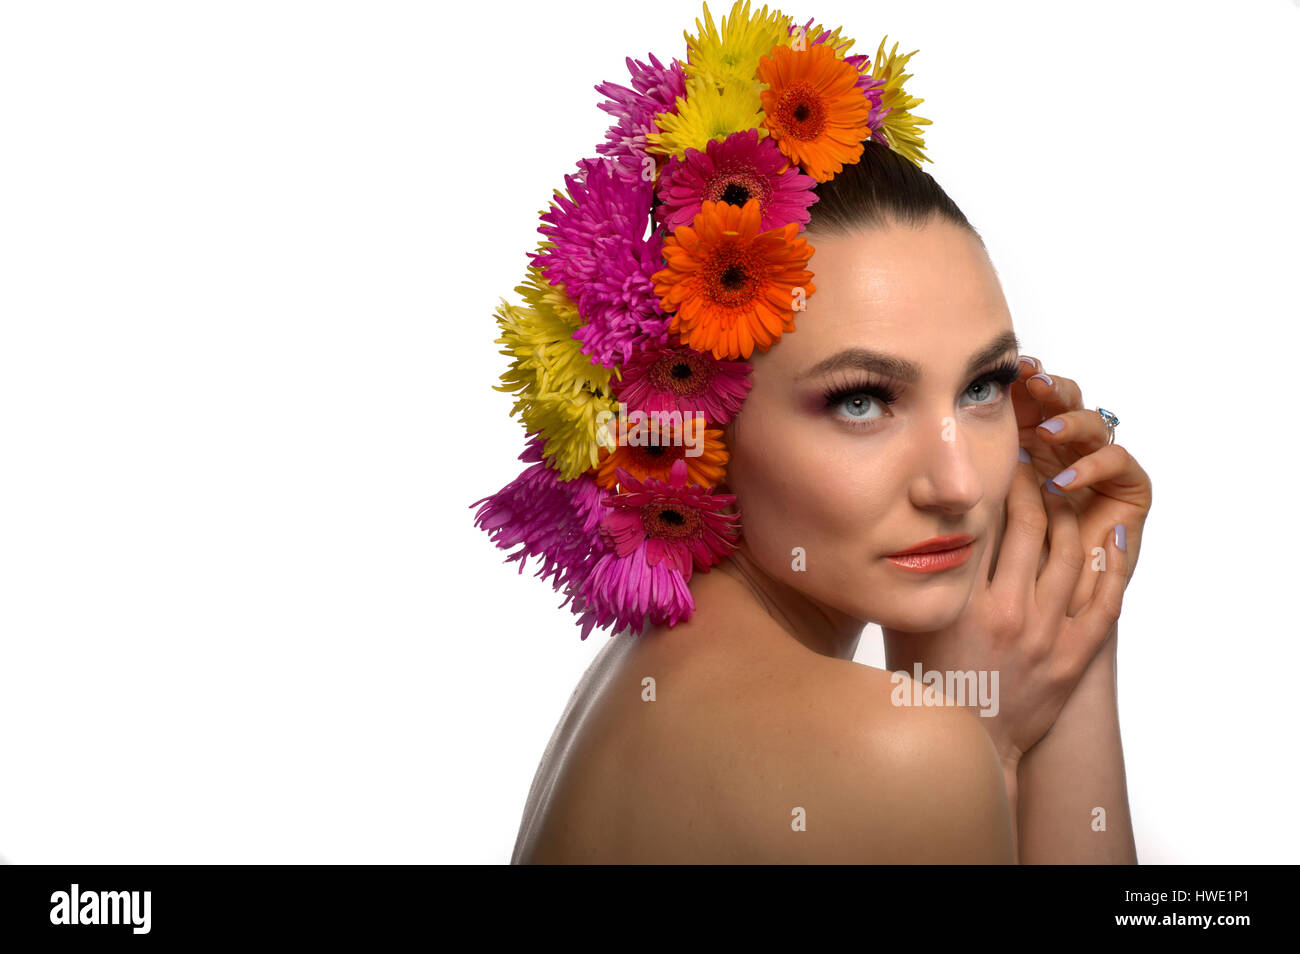 beautiful topless woman with fresh flowers on her head Stock Photo